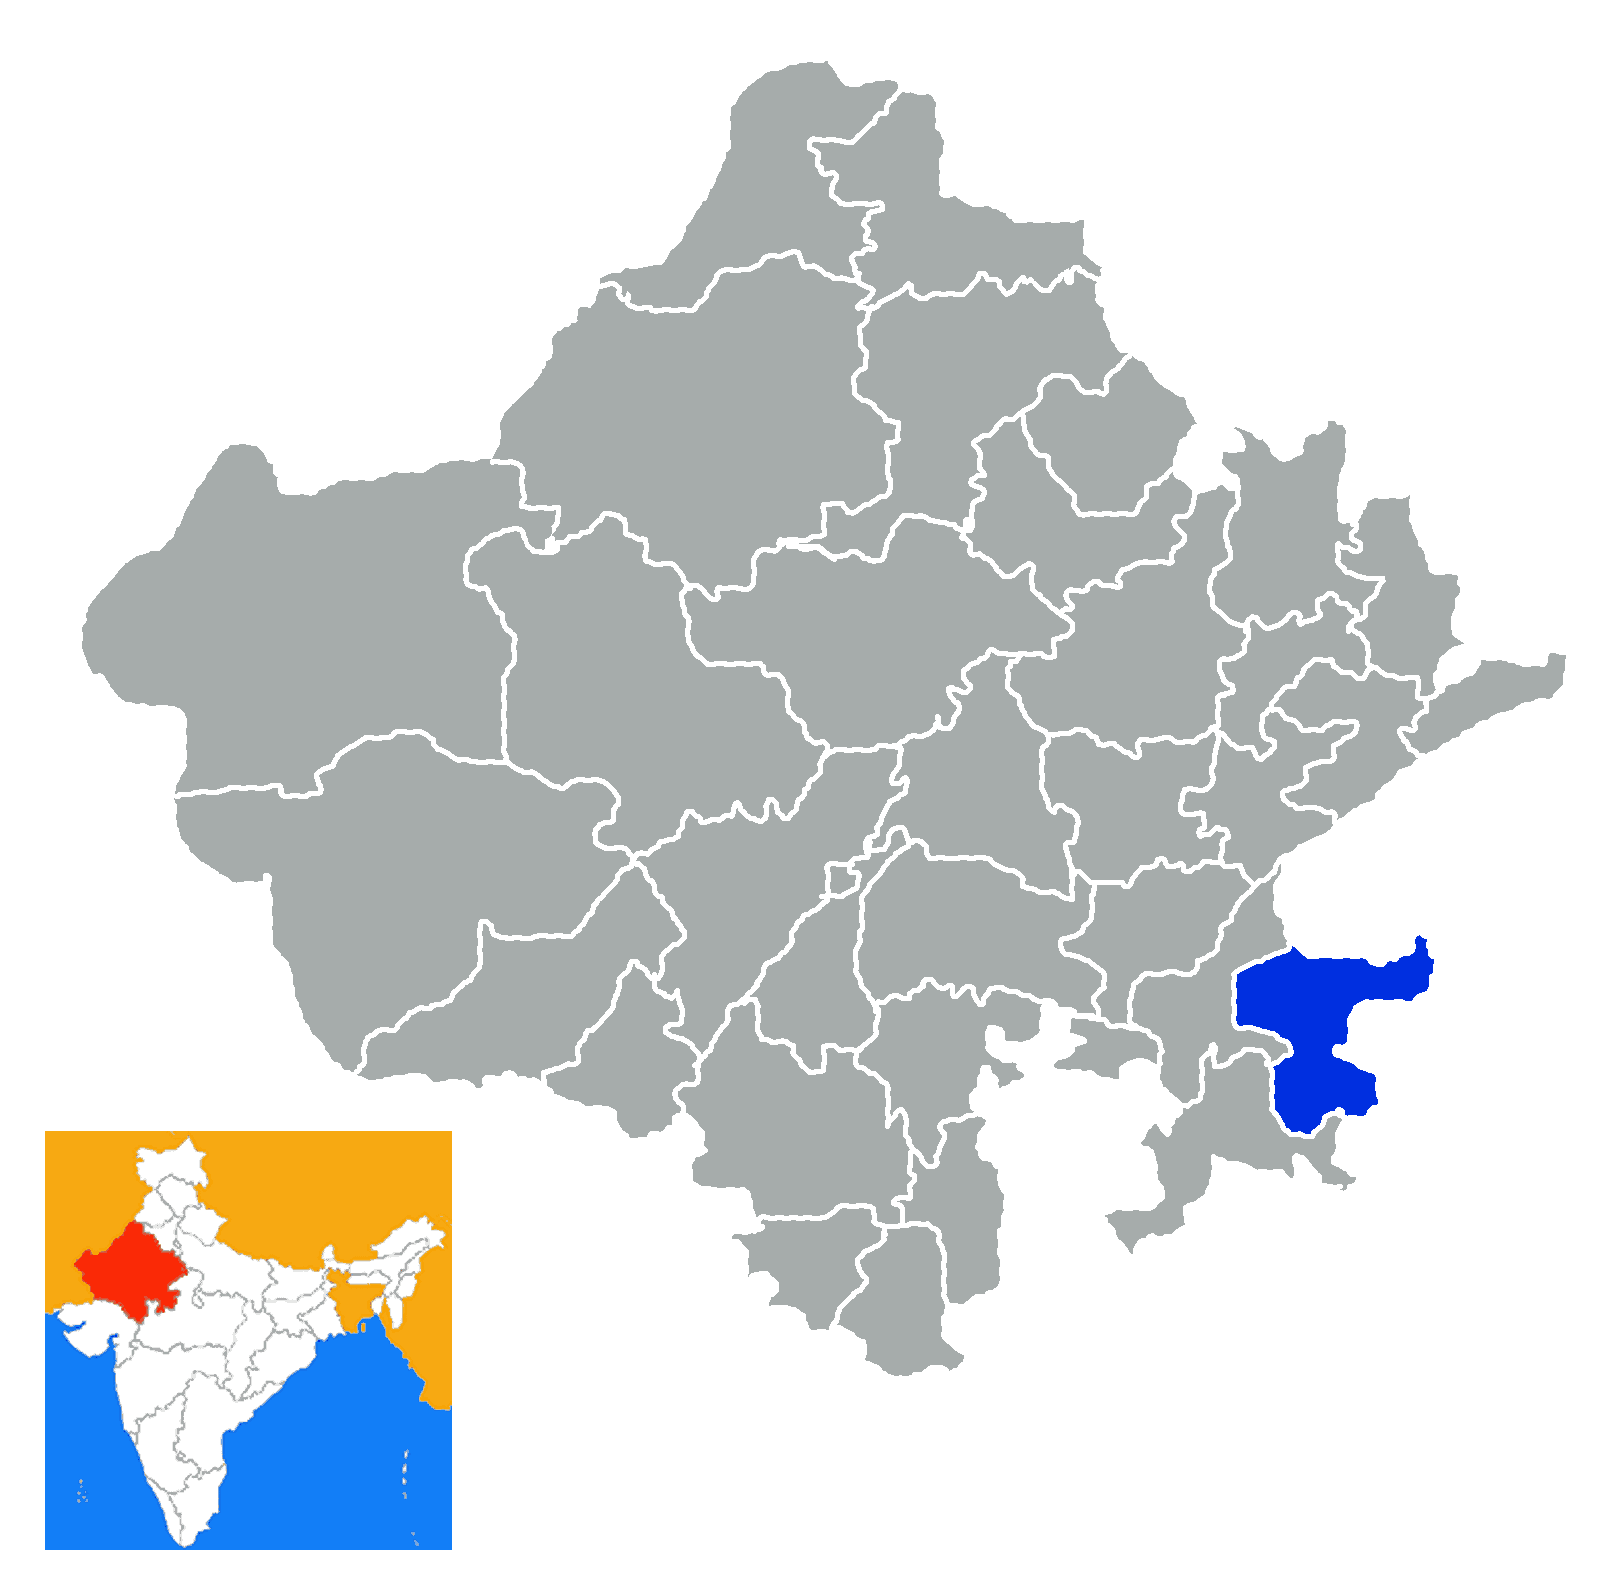 Map of Baran City in Rajasthan